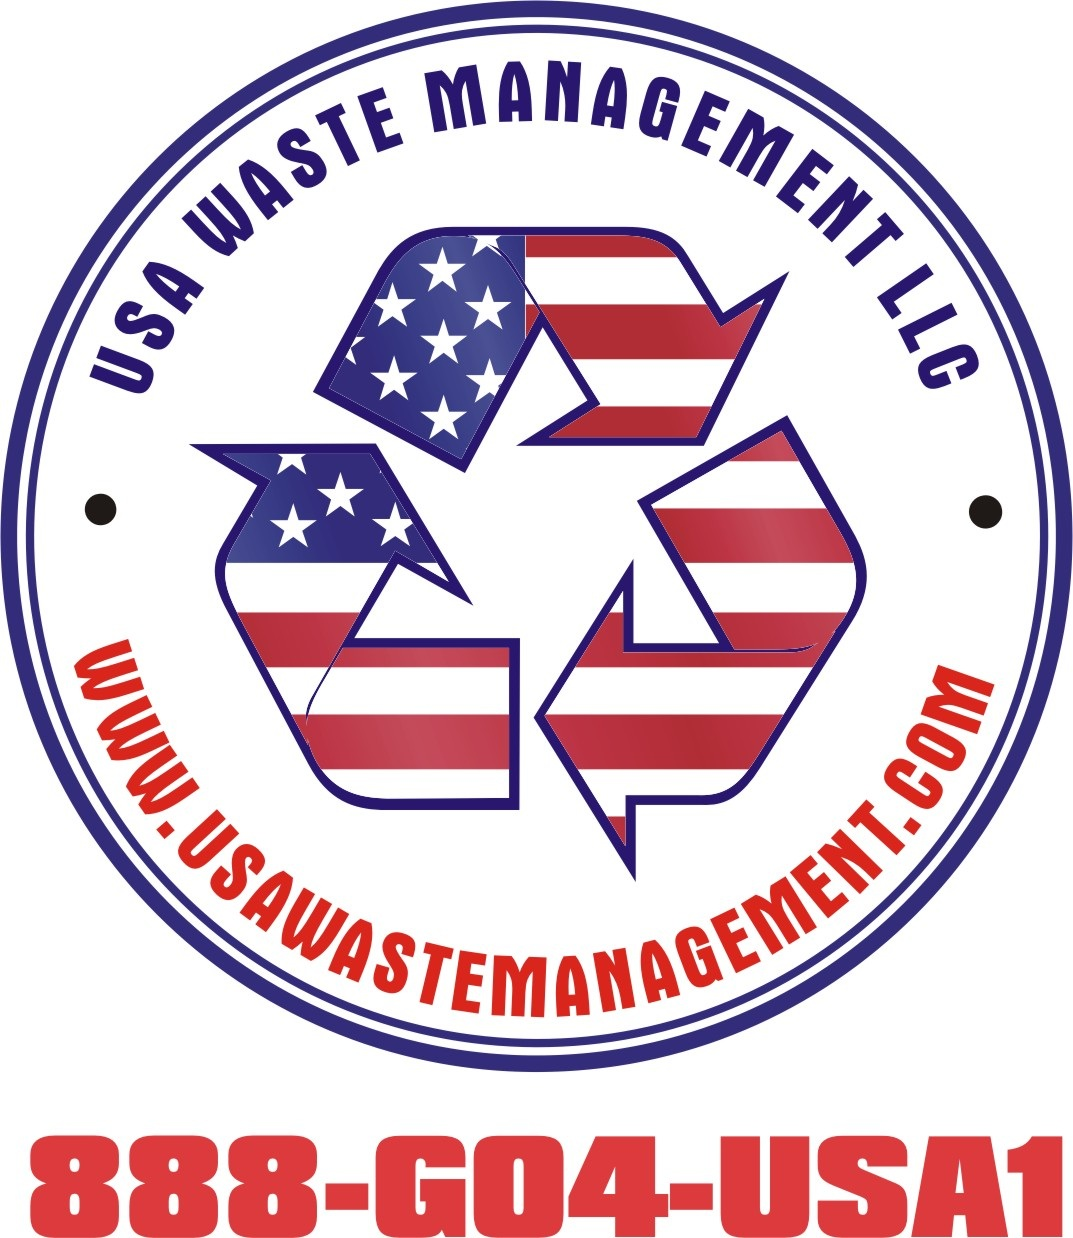 USA Waste Management